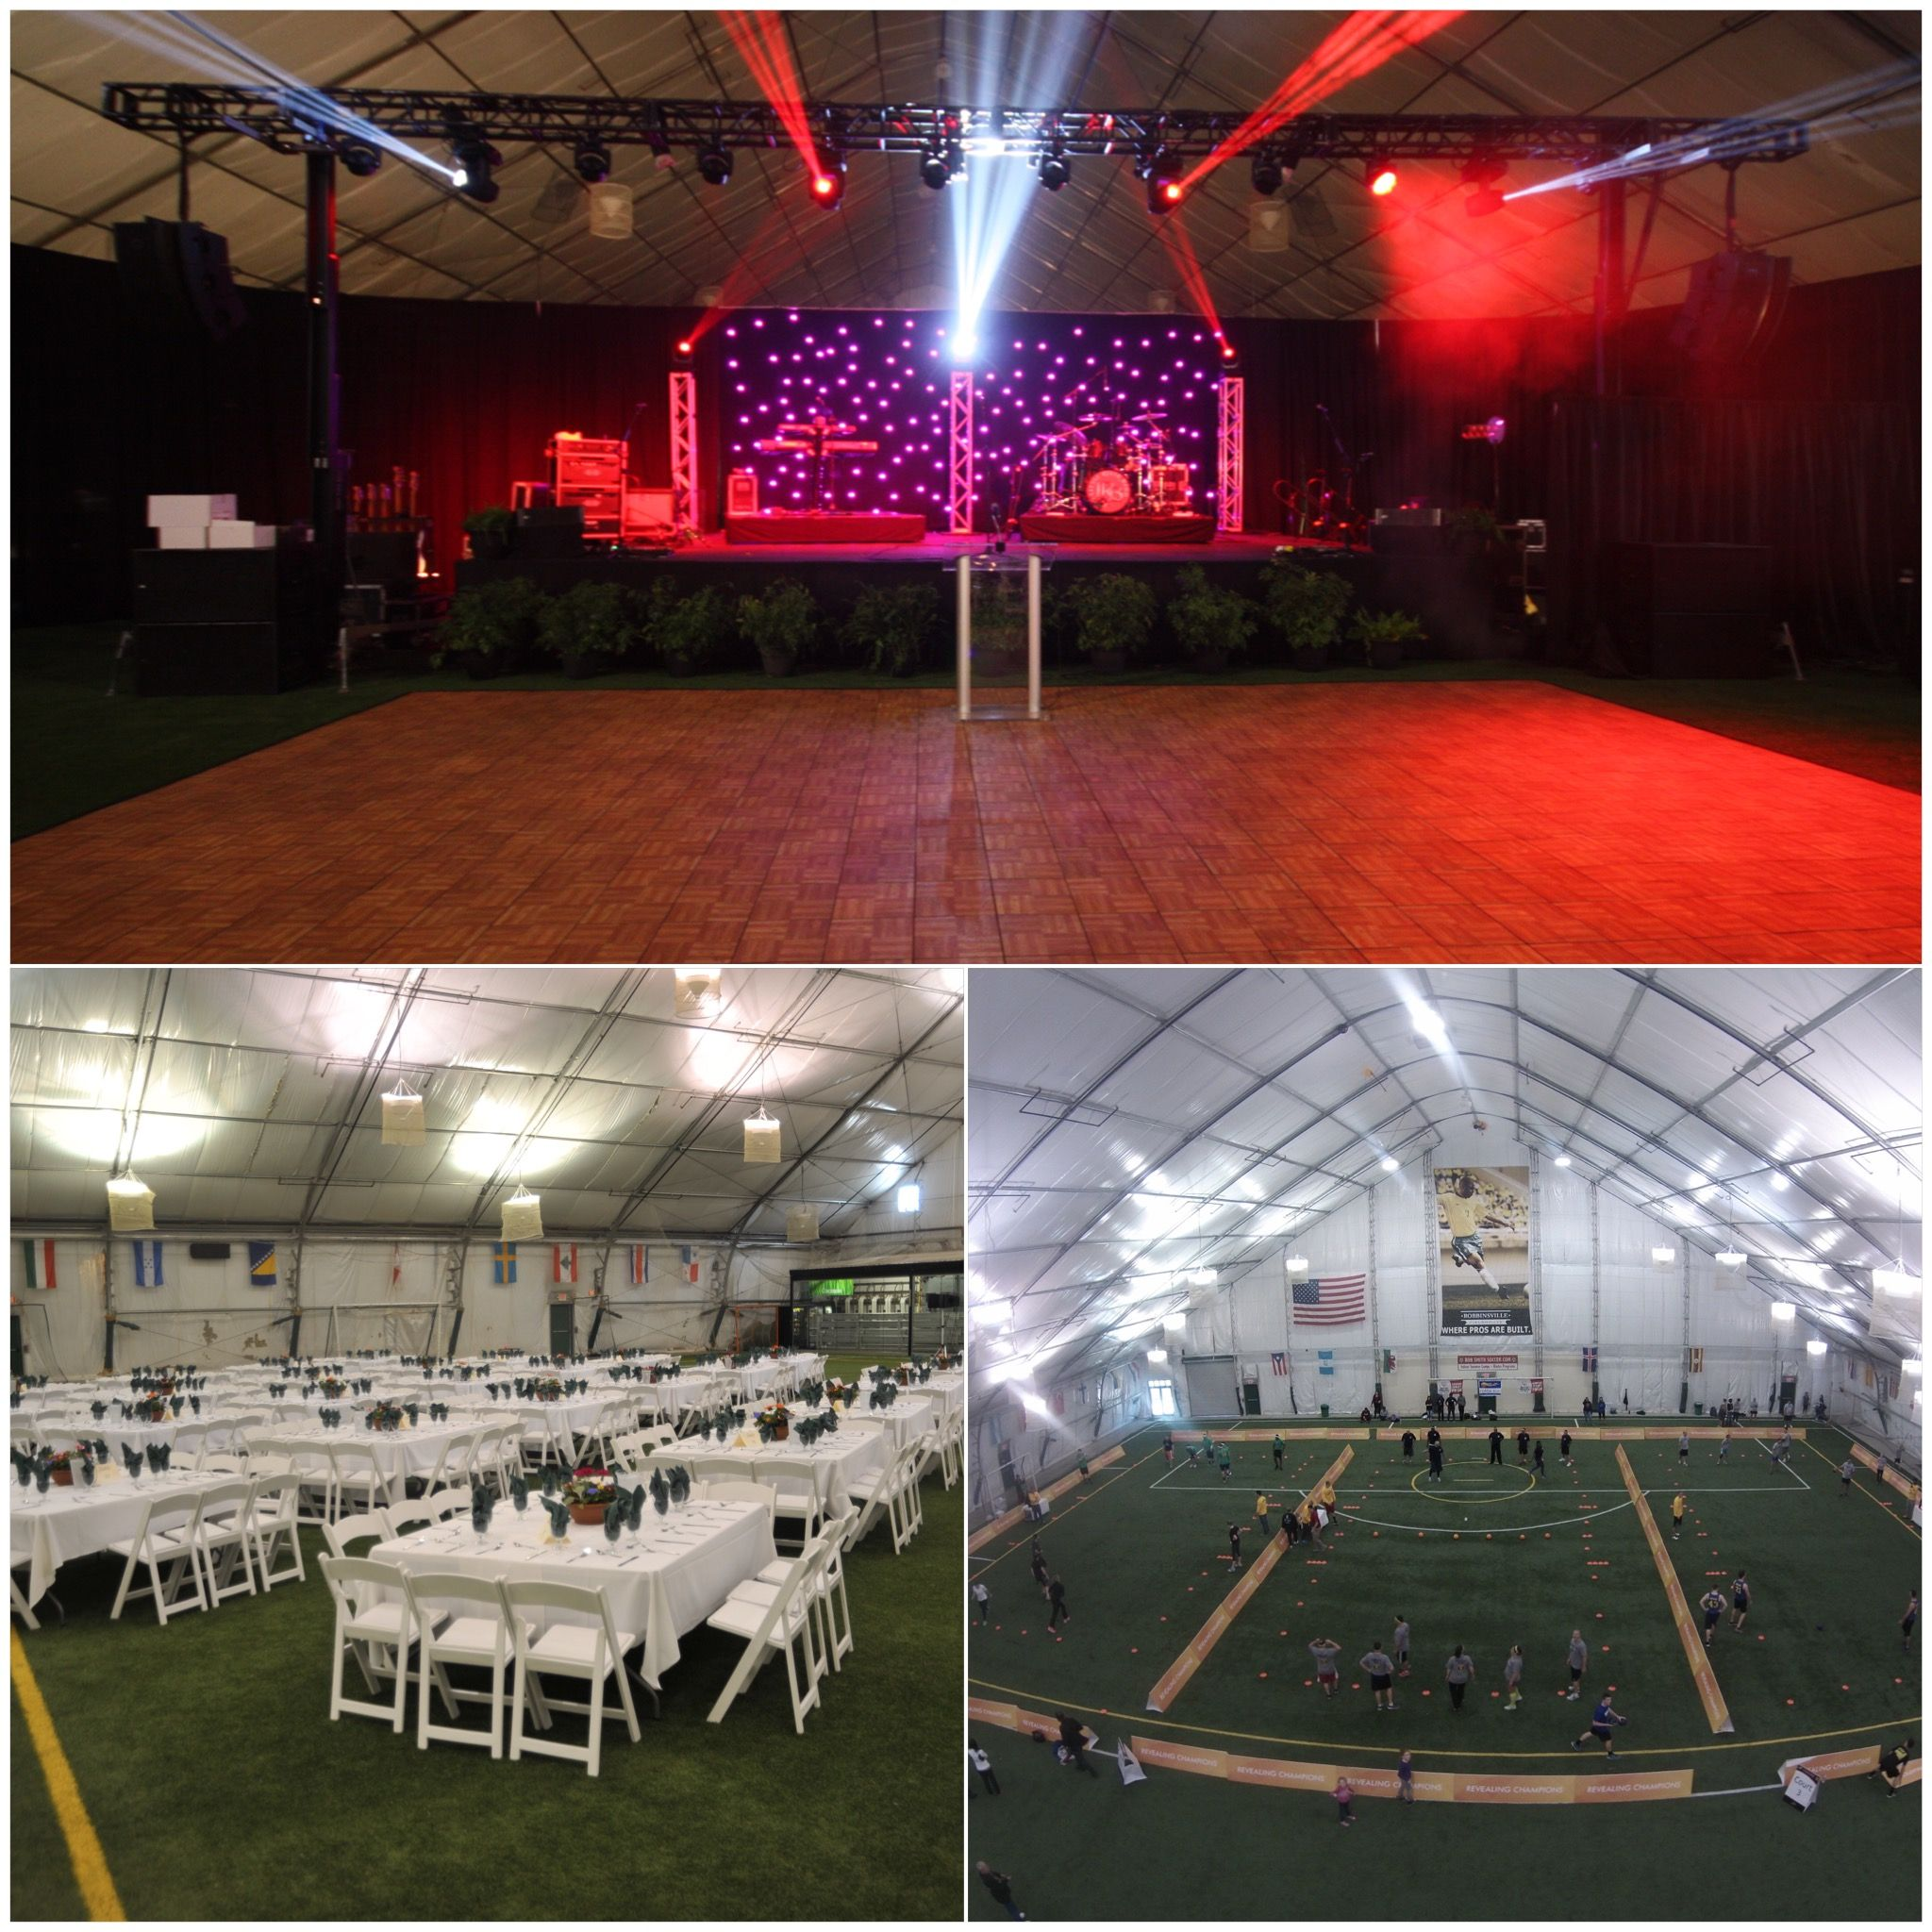 The Robbinsville Fieldhouse Sports and Expo Center is perfect for all kinds of functions. #distincthospitalitygroup #robbinsvillefieldhouse #expocenter #venue #indoorsportscenter #robbinsvillefieldhousesportsandexpocenter #robbinsvillenj #hamptoninnandsuitesrobbinsvillenj #hamiltonnj #indoorvenue